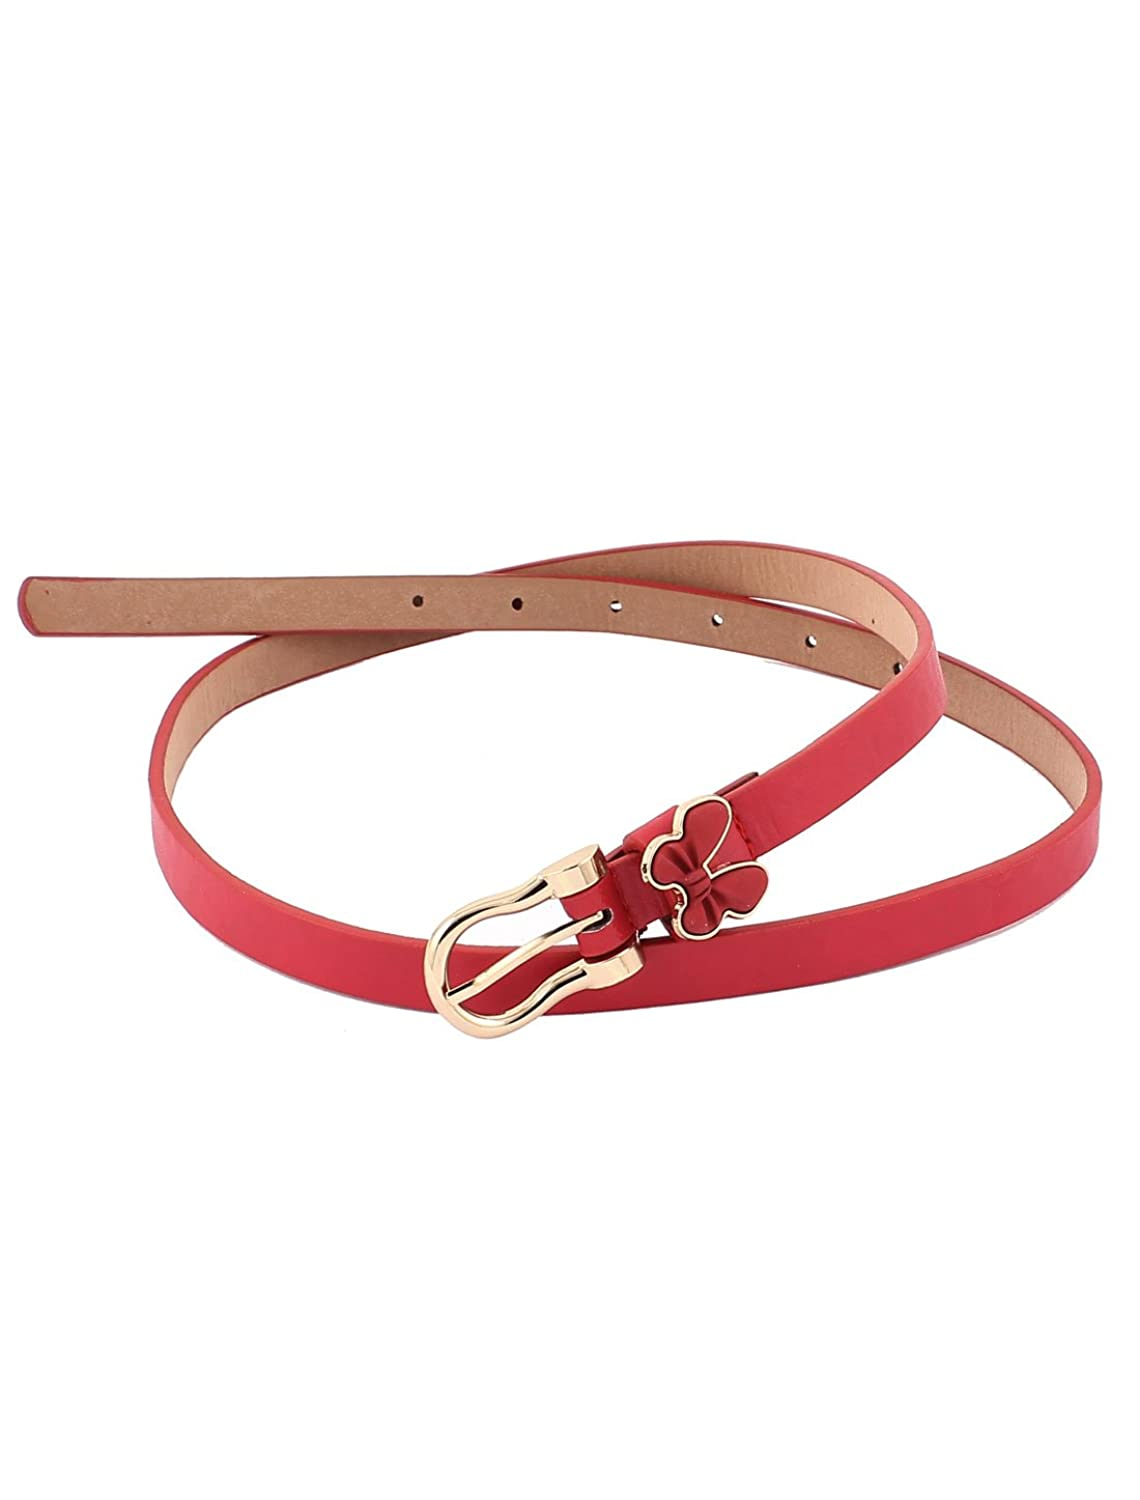 Lady Women Butterfly Decor Buckle Thin Skinny Waist Belt Waistand Red